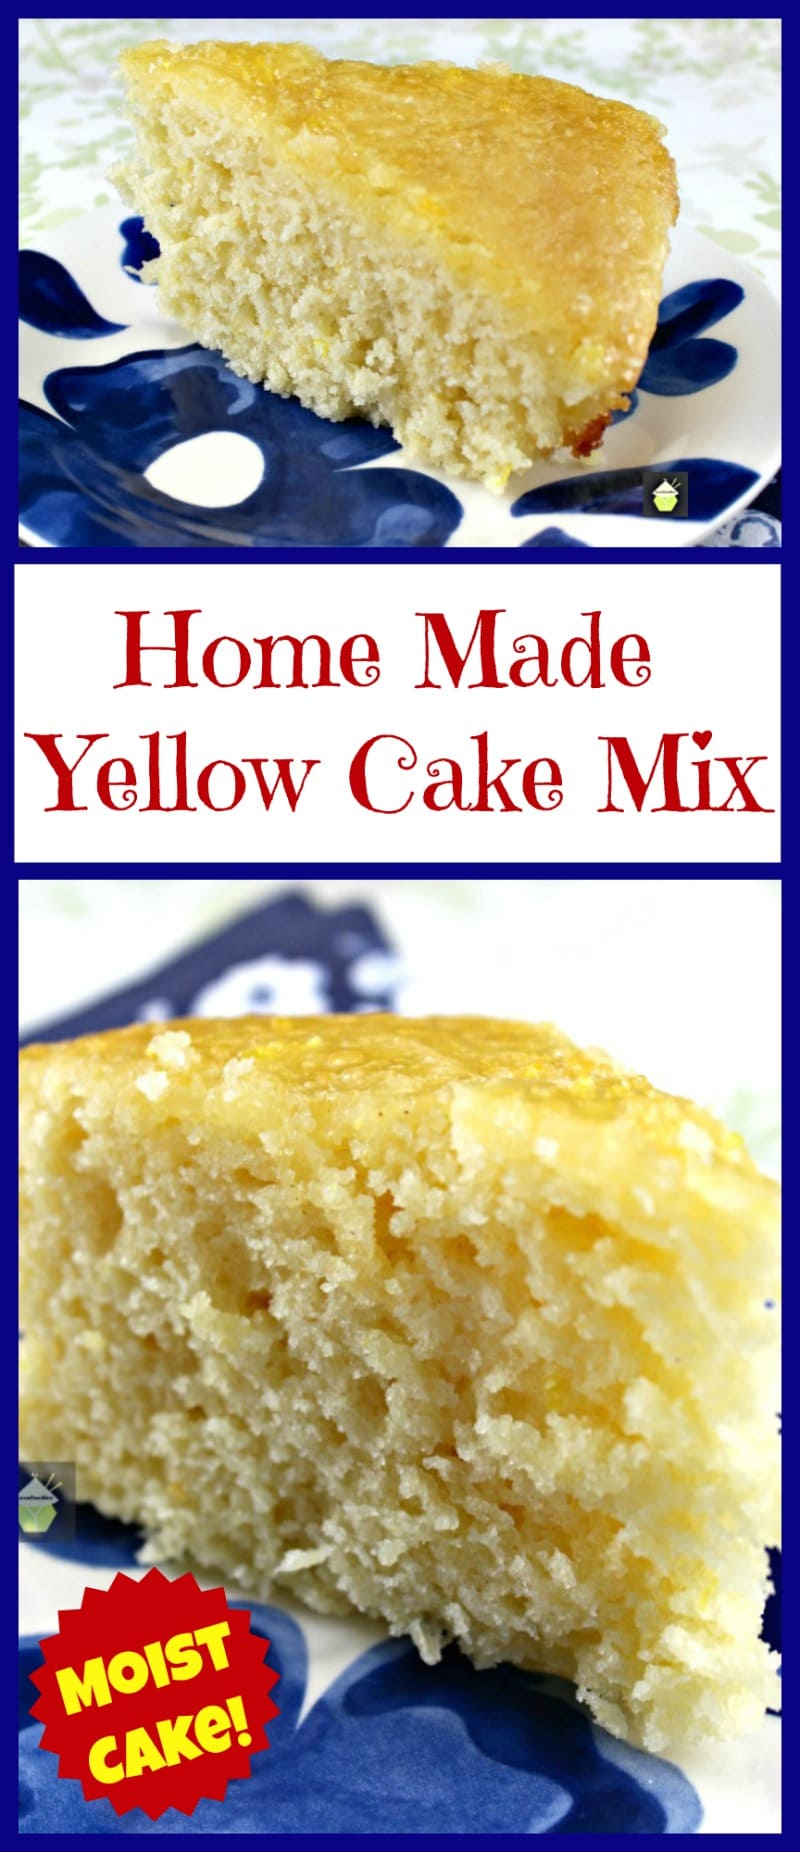 Recipes made from yellow cake mix